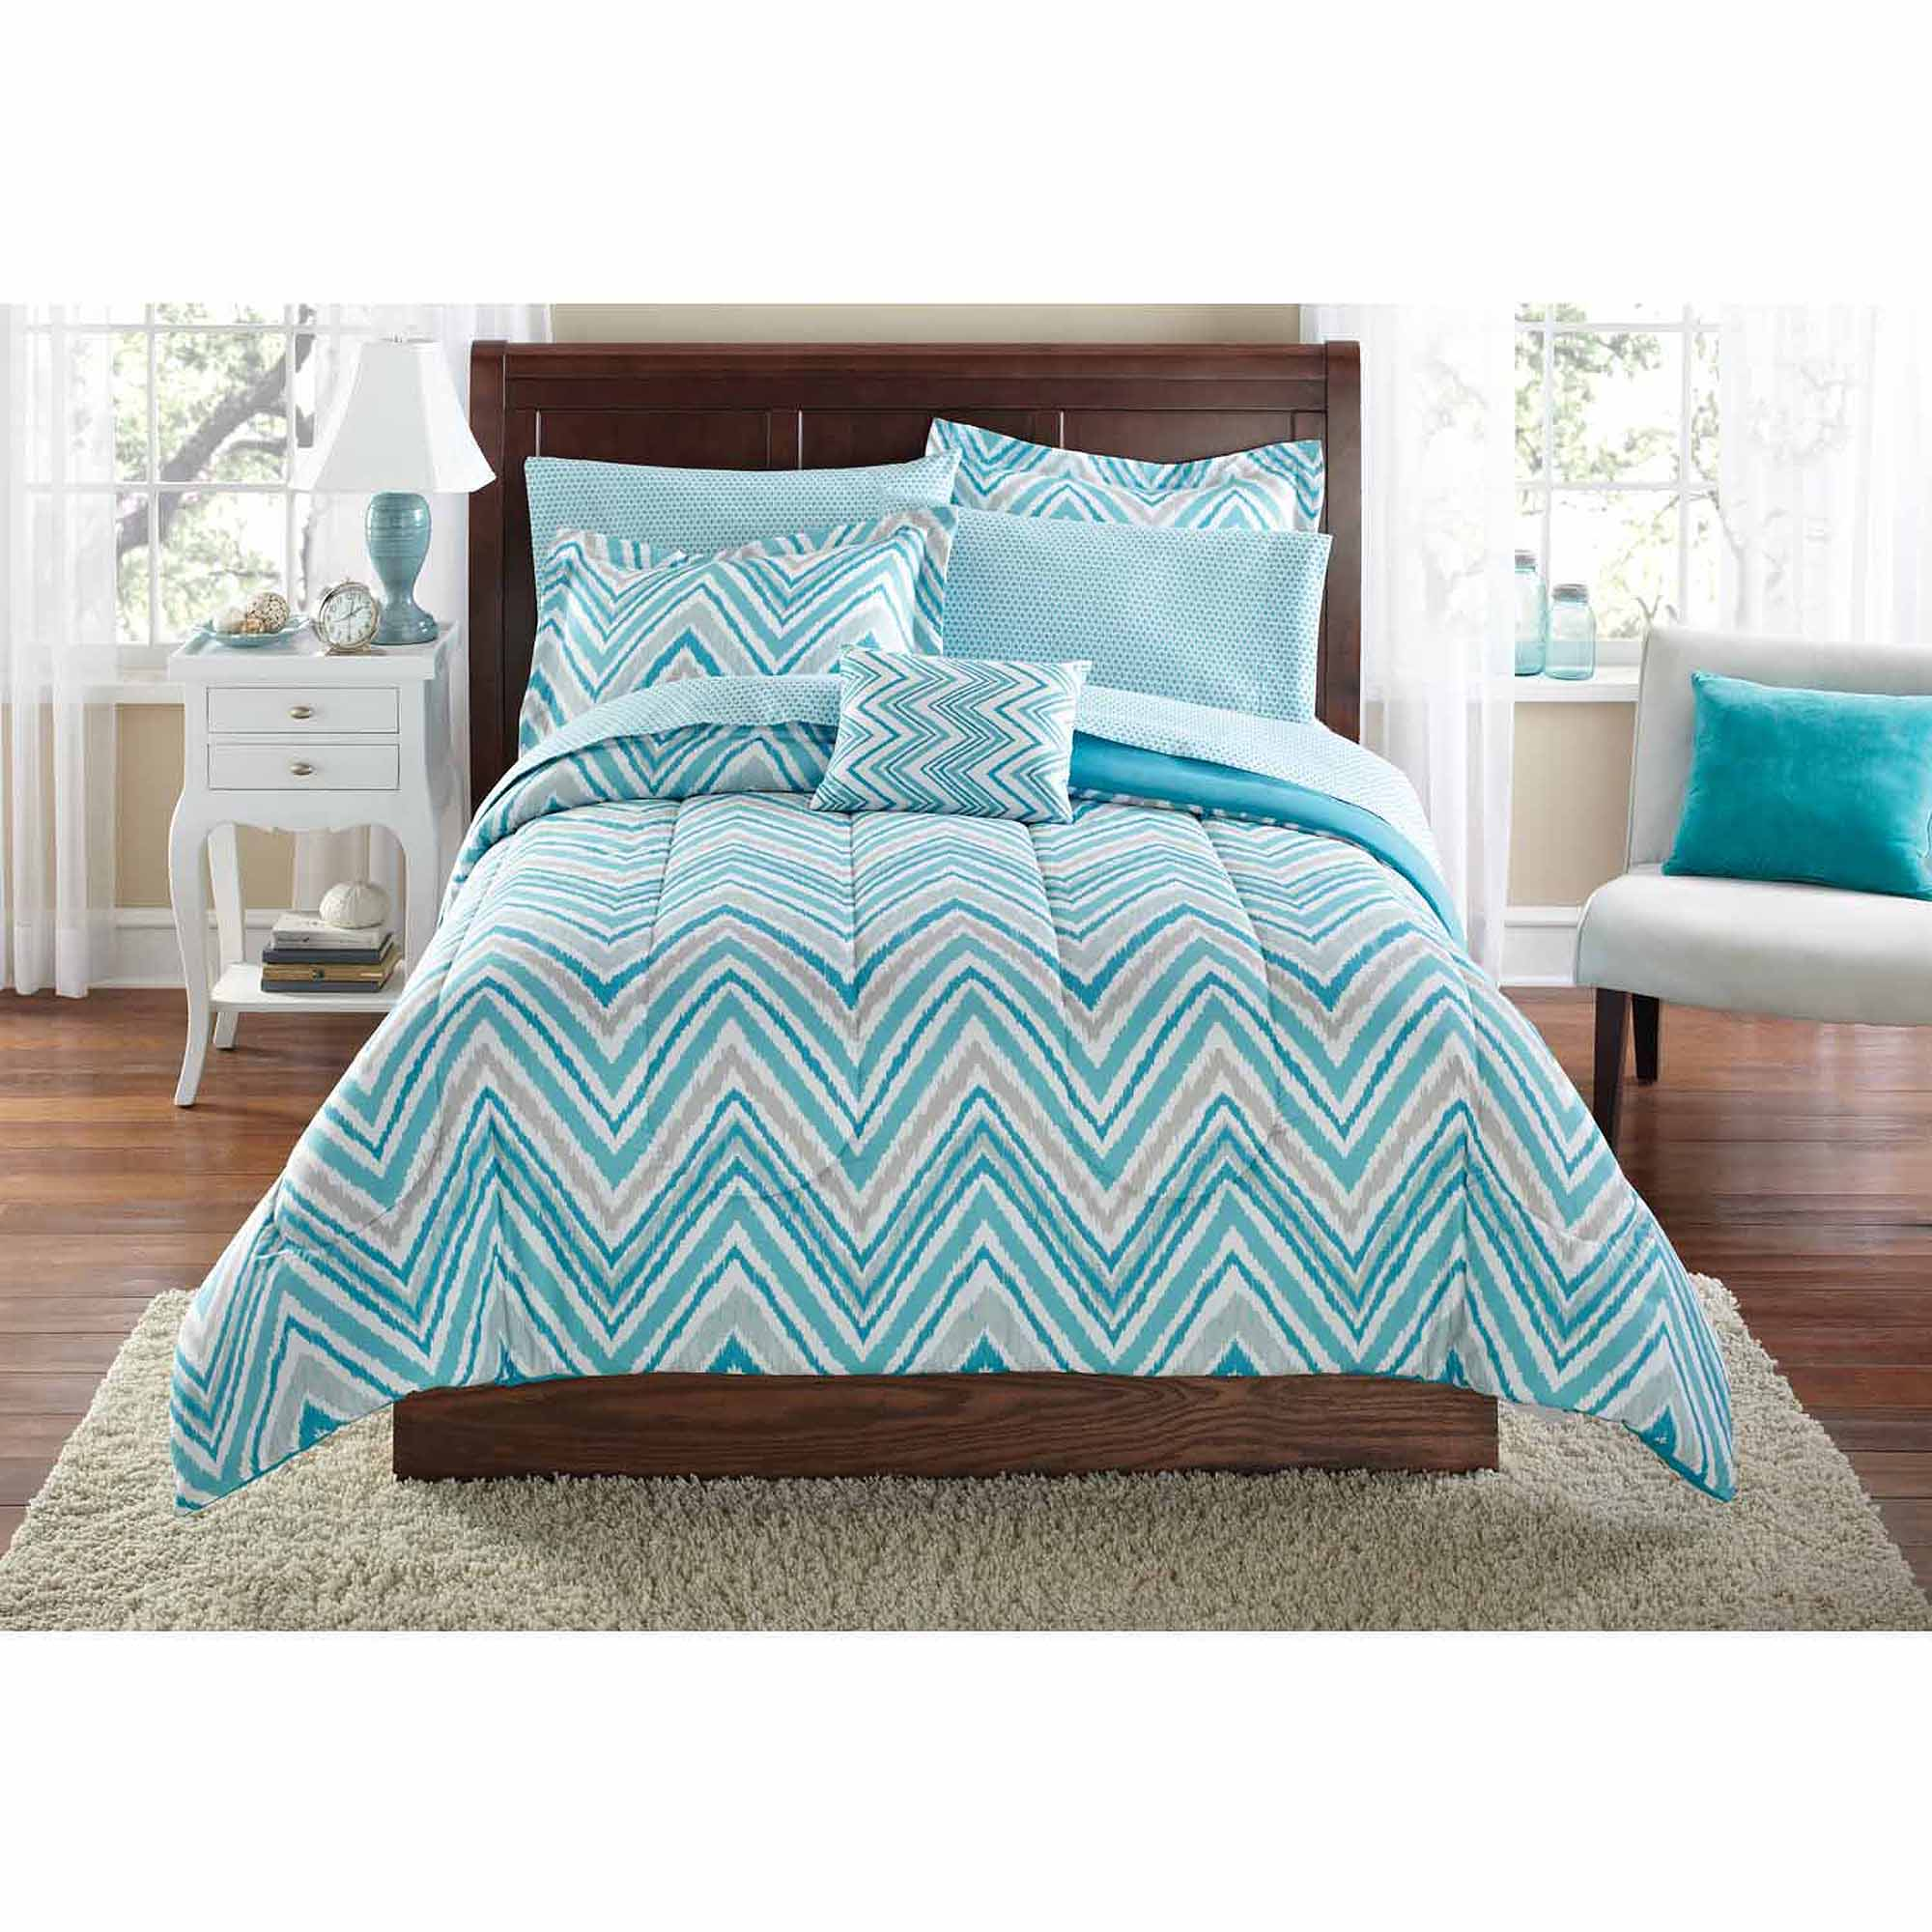 MS WATERCOLOR CHEVRON BNB - Walmart.com